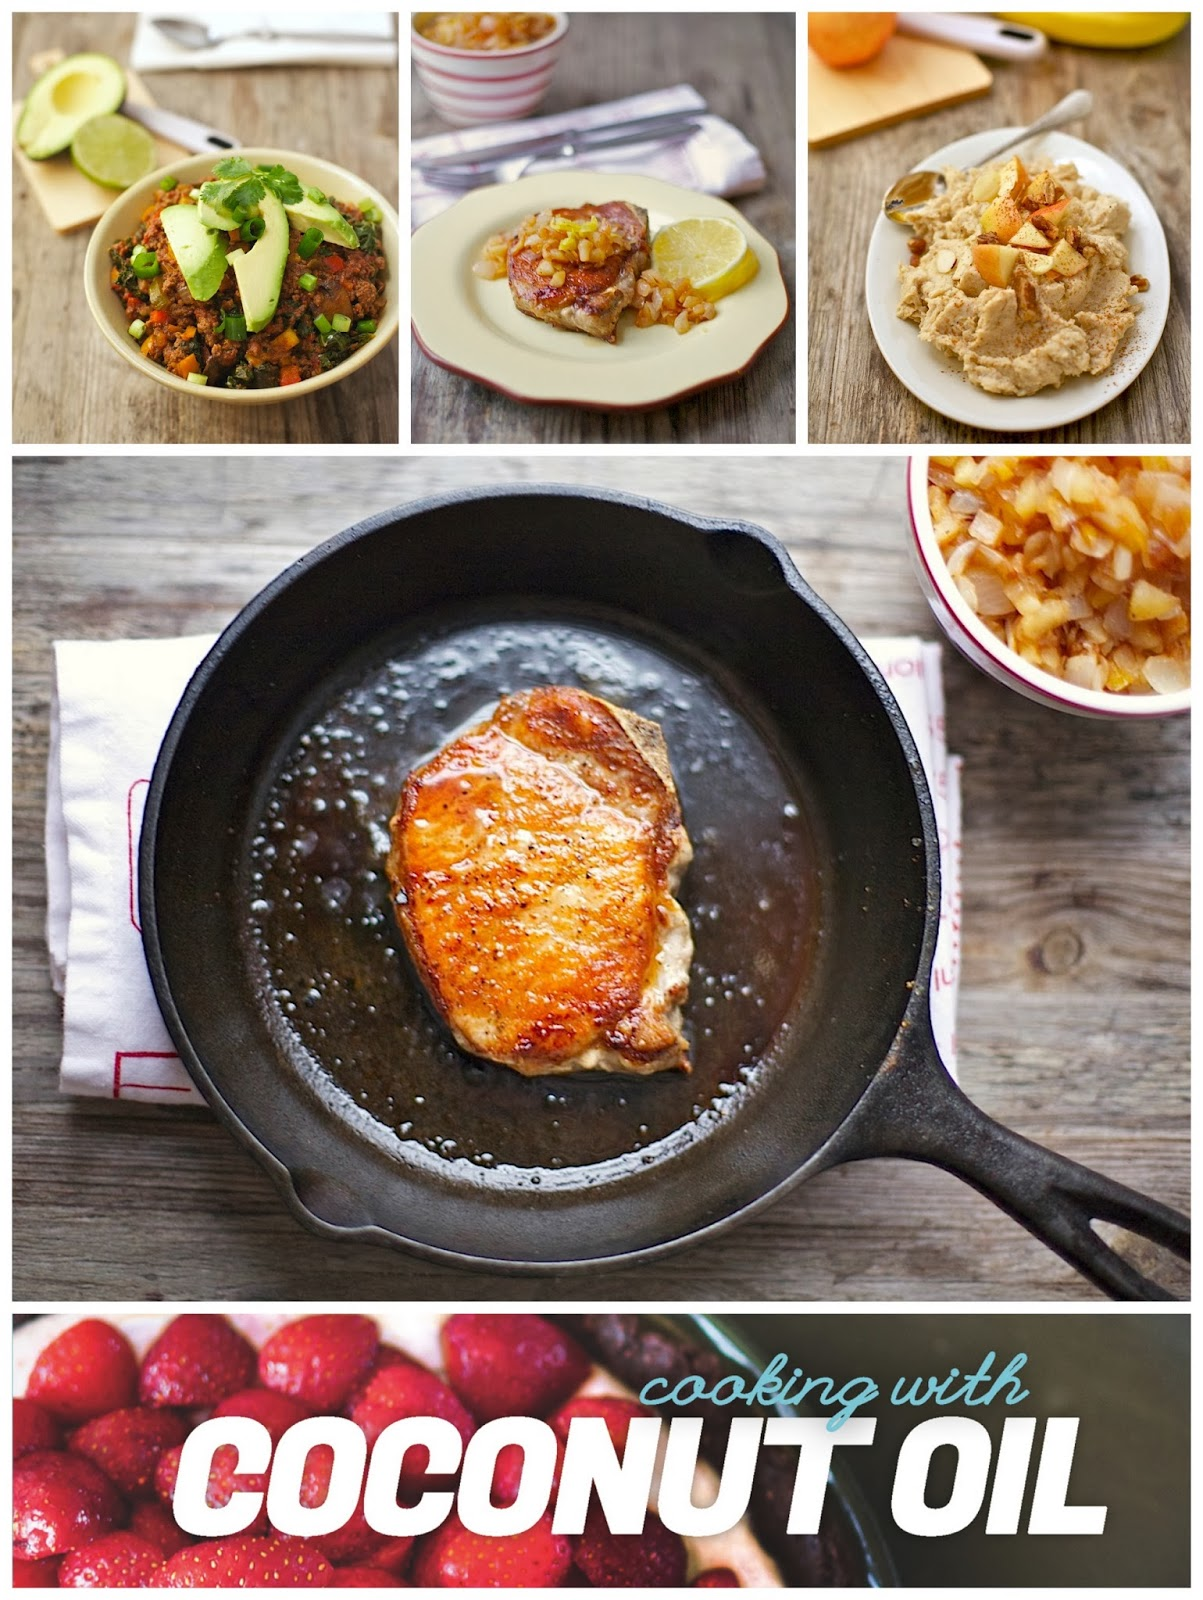 Pork Chops & Apple Compote (Gluten free, Paleo, Whole30)